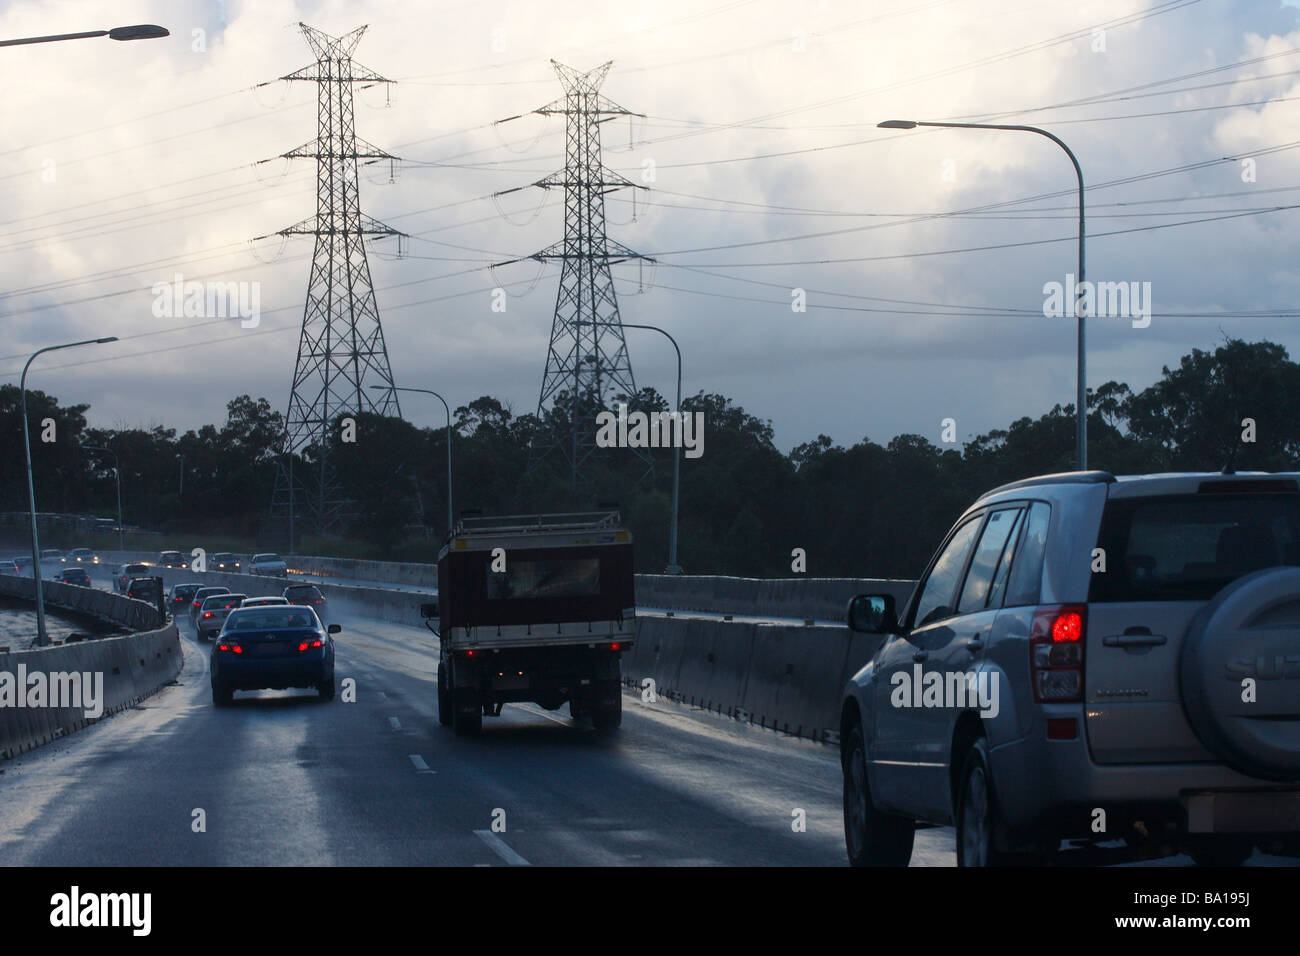 Cars driving down wet road - Stock Image